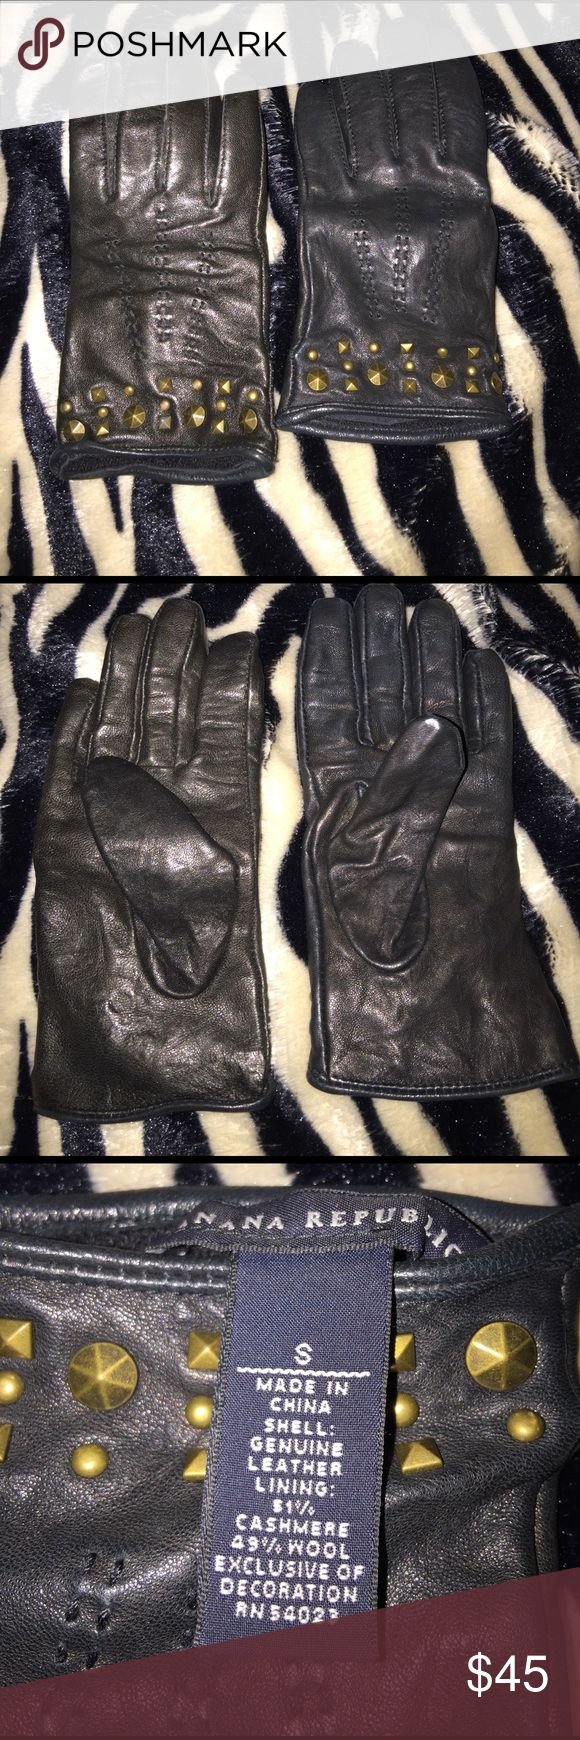 John lewis ladies black leather gloves - Genuine Leather Gloves